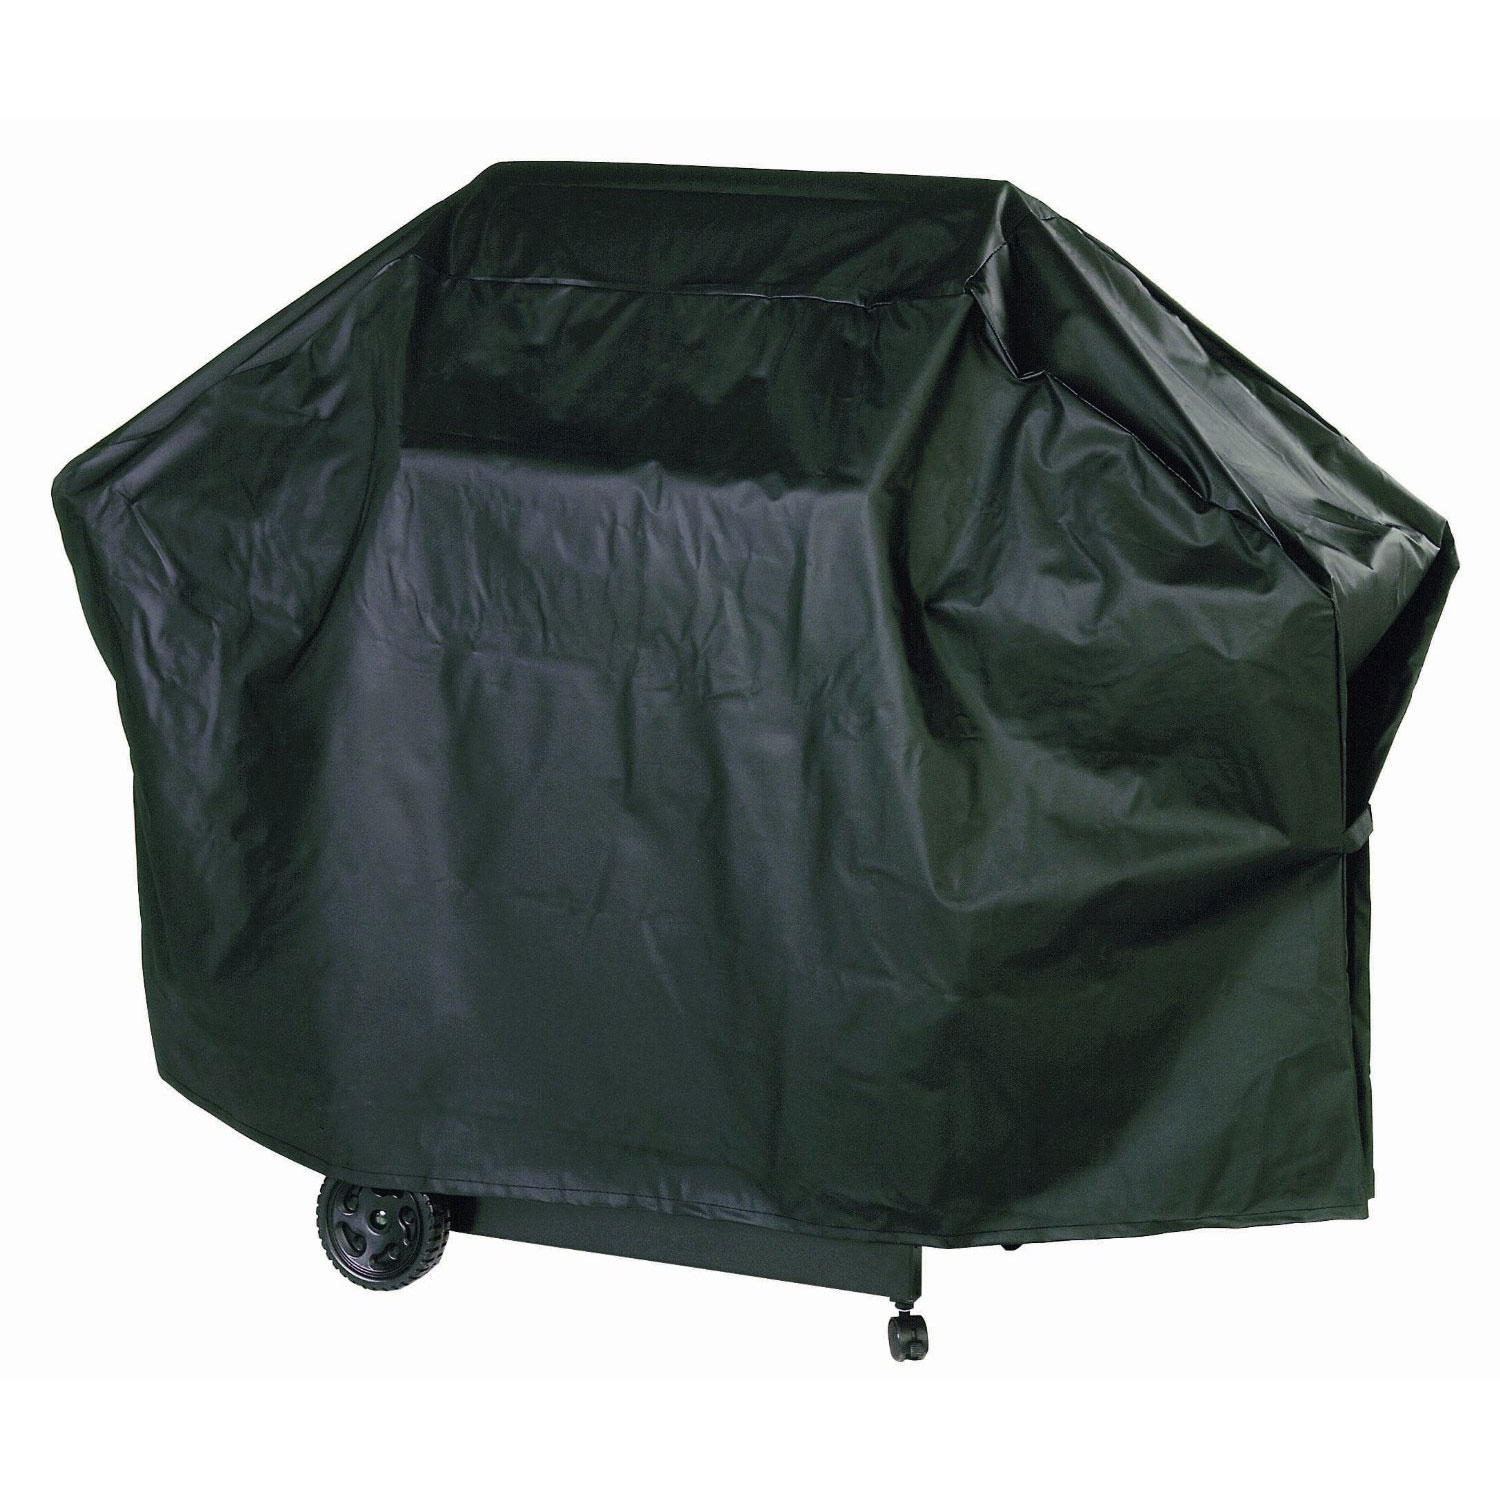 "Char-Broil 65"" Grill Cover"